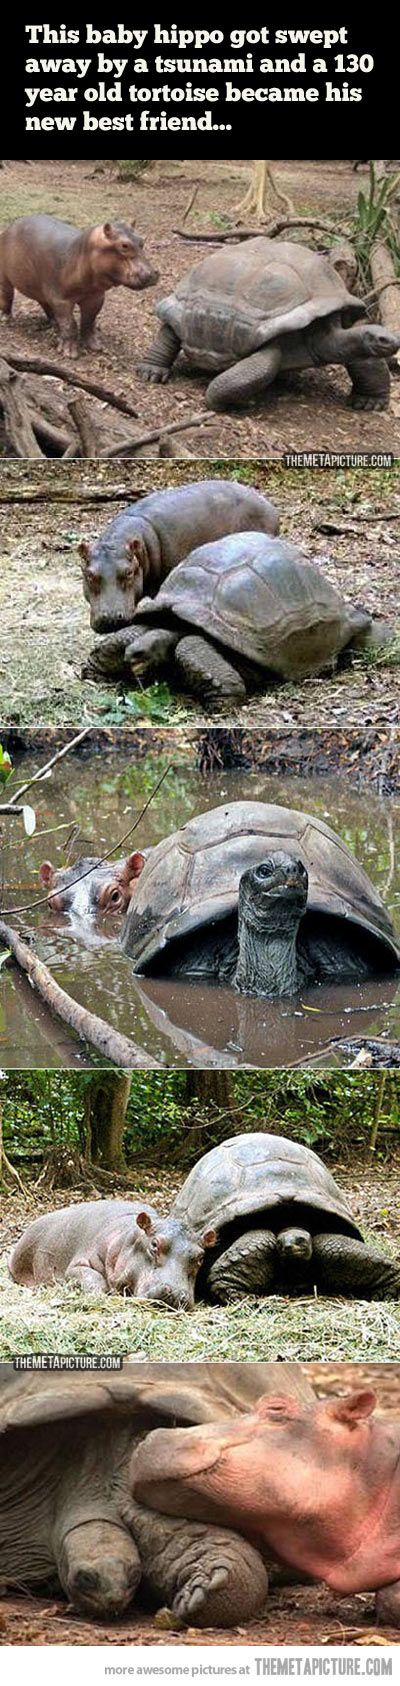 Baby hippo and 130 year old tortoise become best friends.